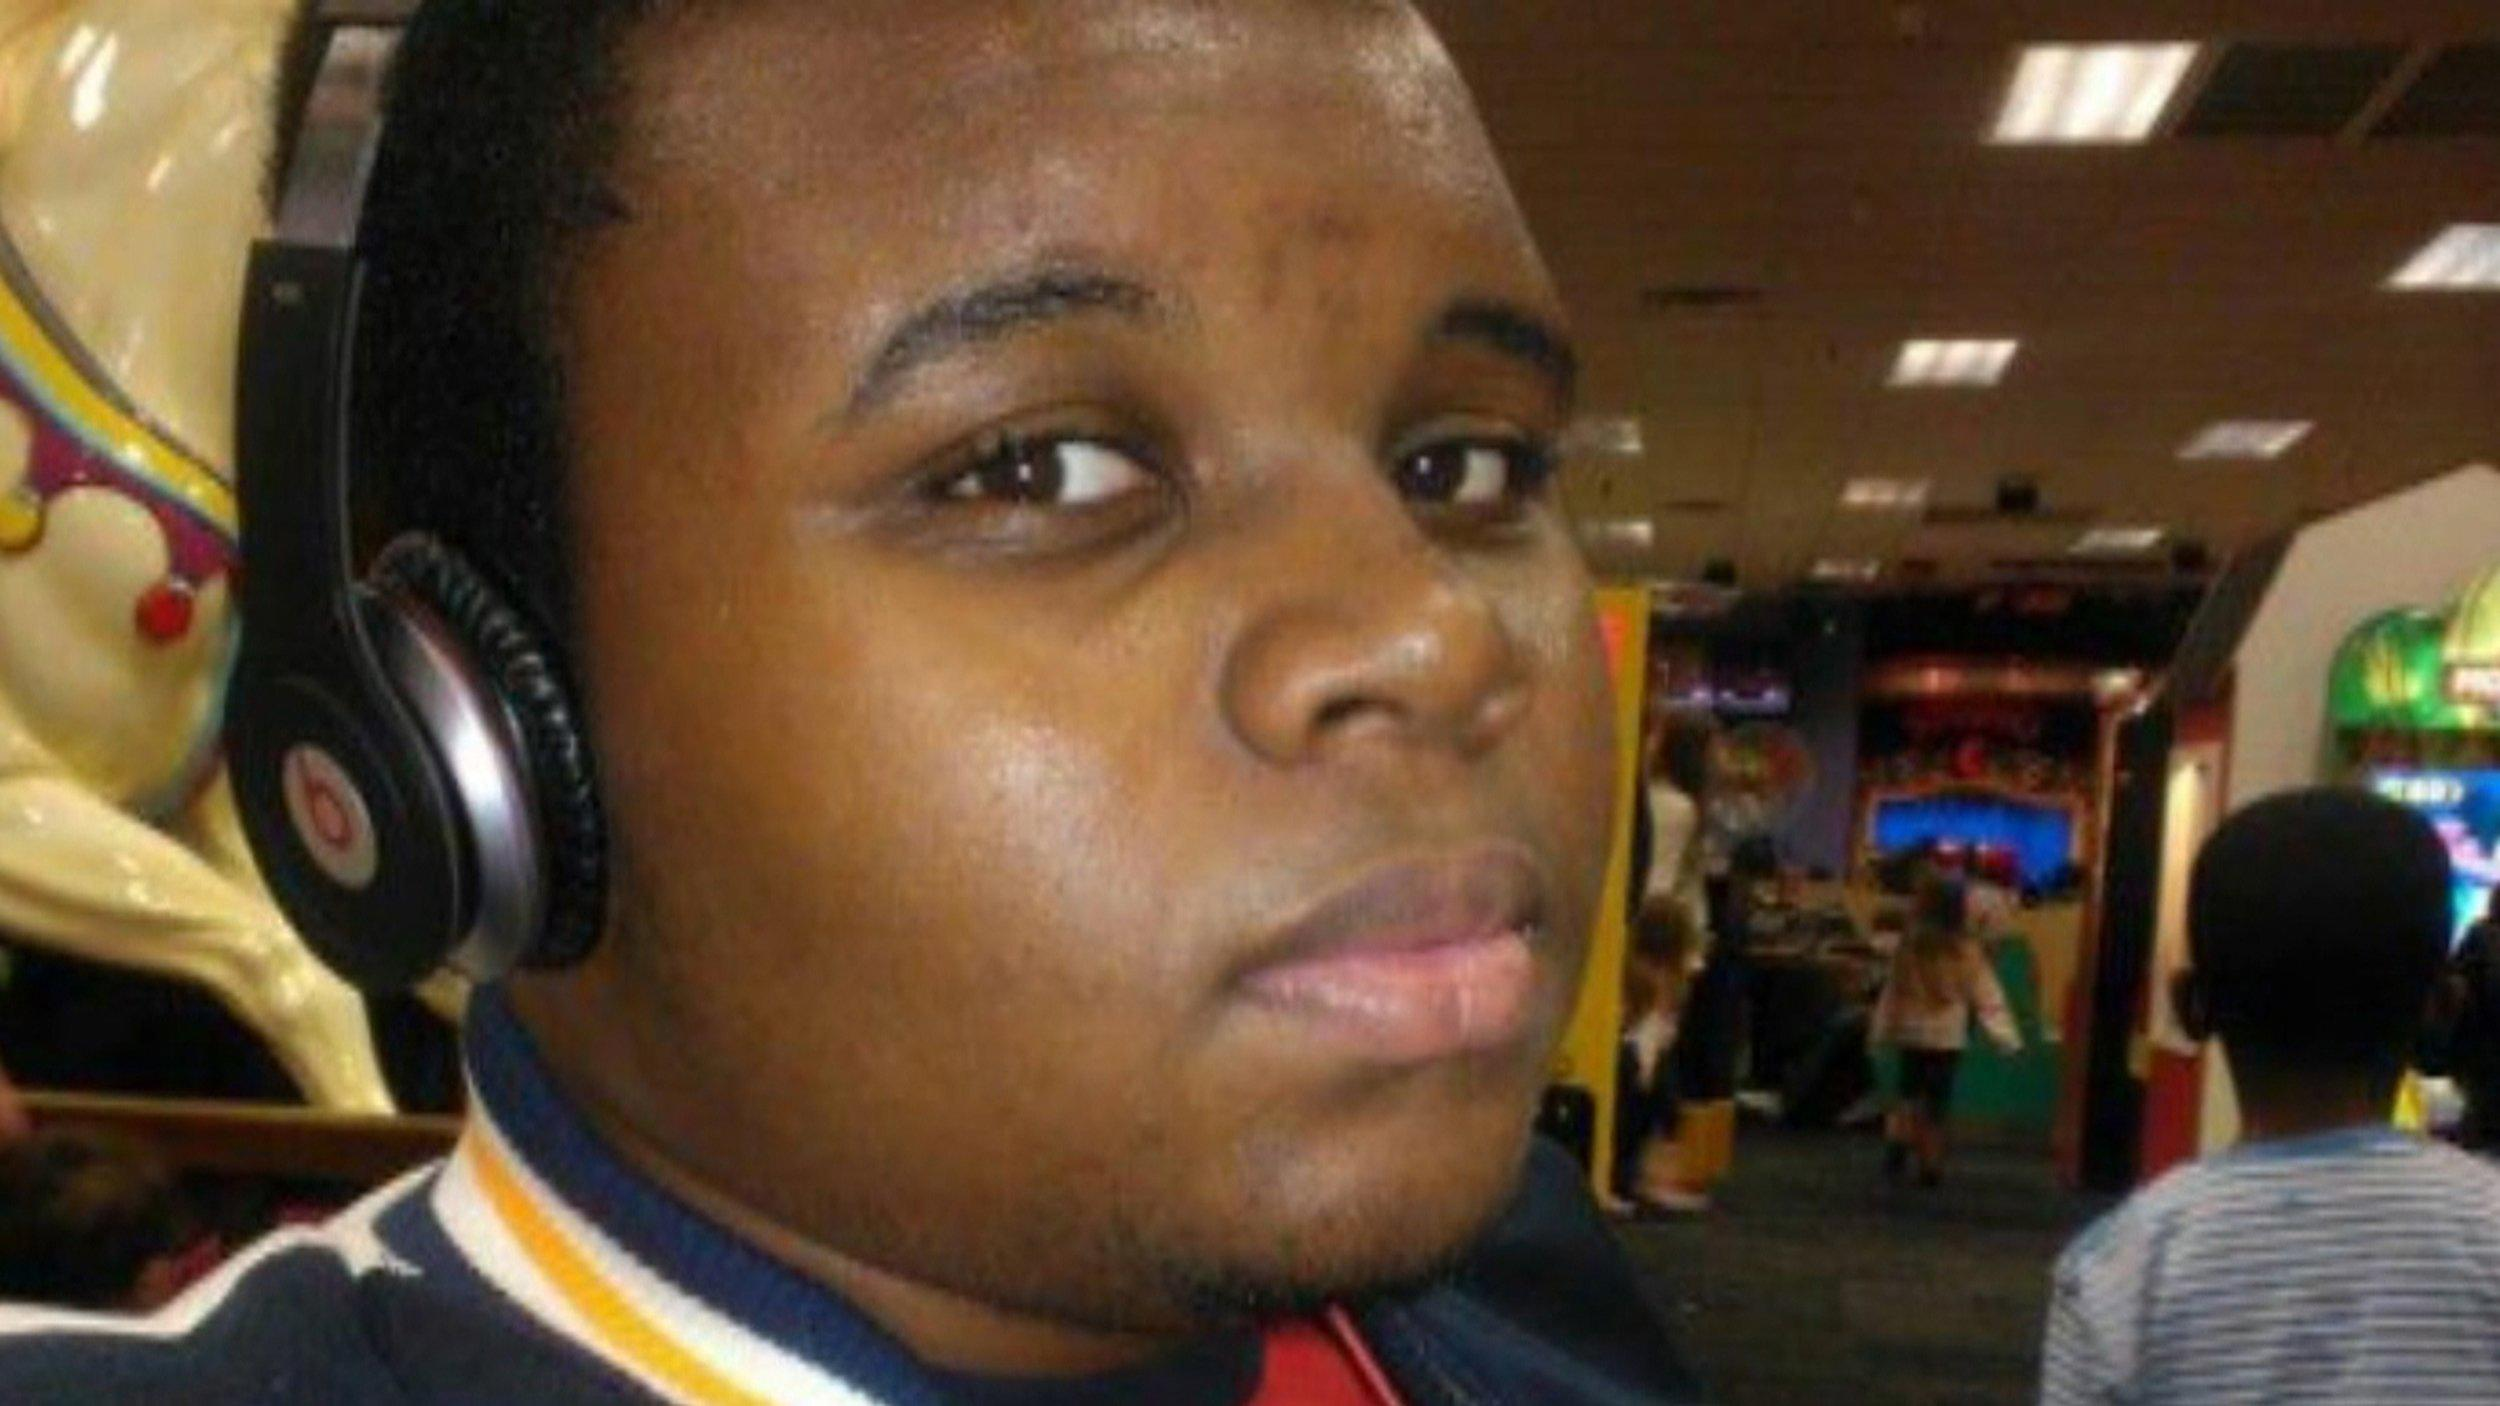 No charges for officer who shot Michael Brown in Ferguson, Missouri, after follow-up probe